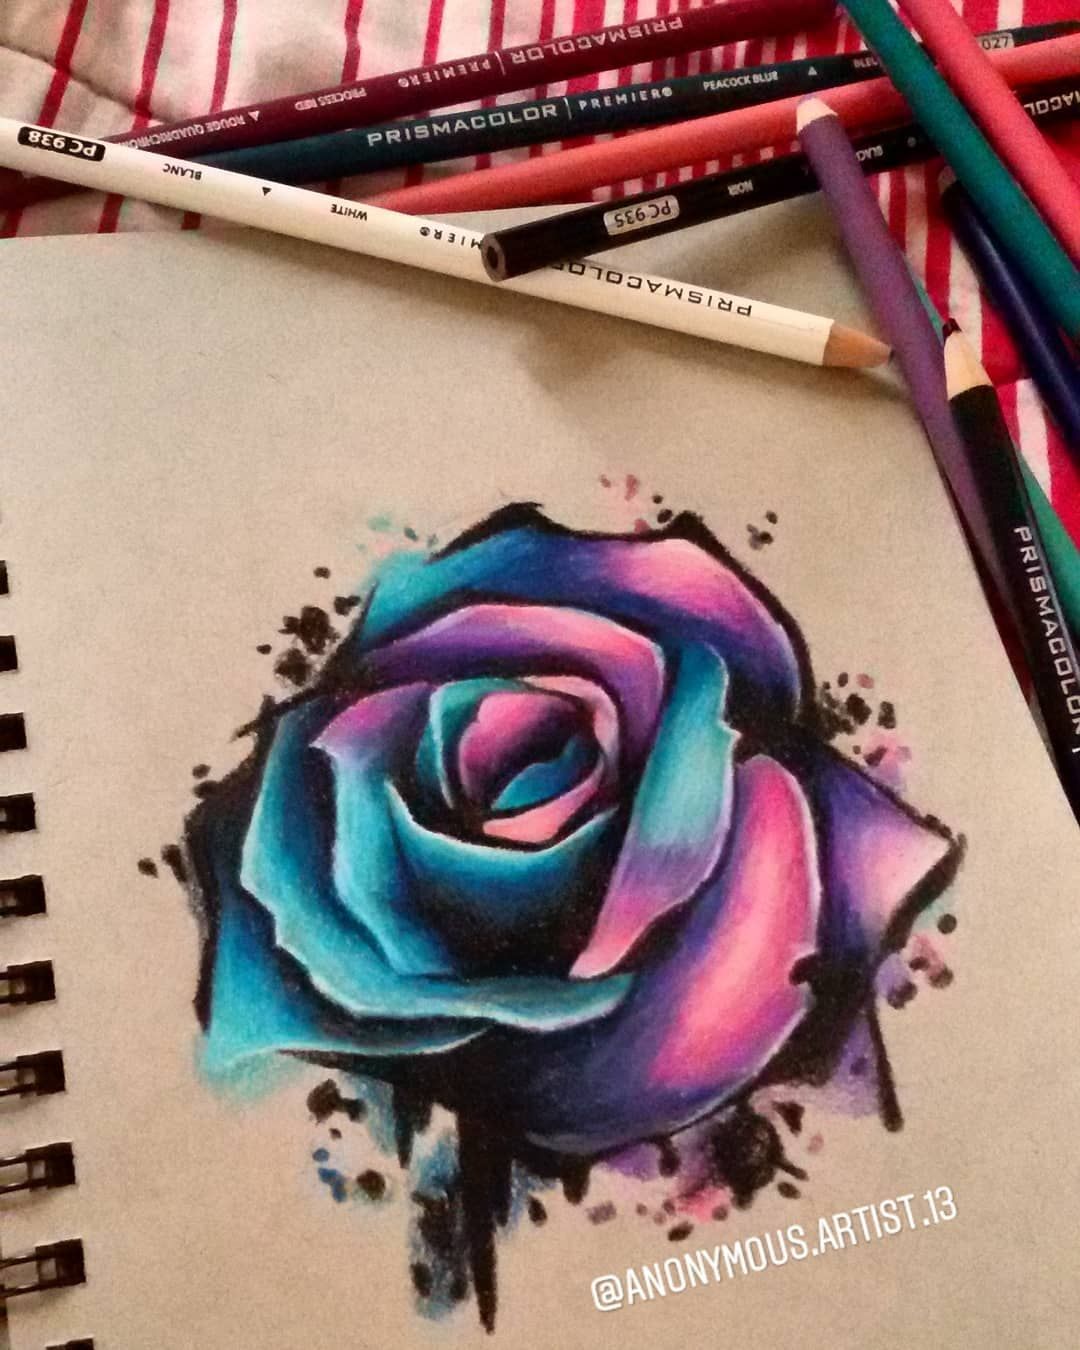 Rainbow Rose Drawing : rainbow, drawing, Rainbow, Rose~♡, Already, Faber, Castell, Colorpencils, Again, Prisma, Roses,, Roses, Drawing,, Drawing